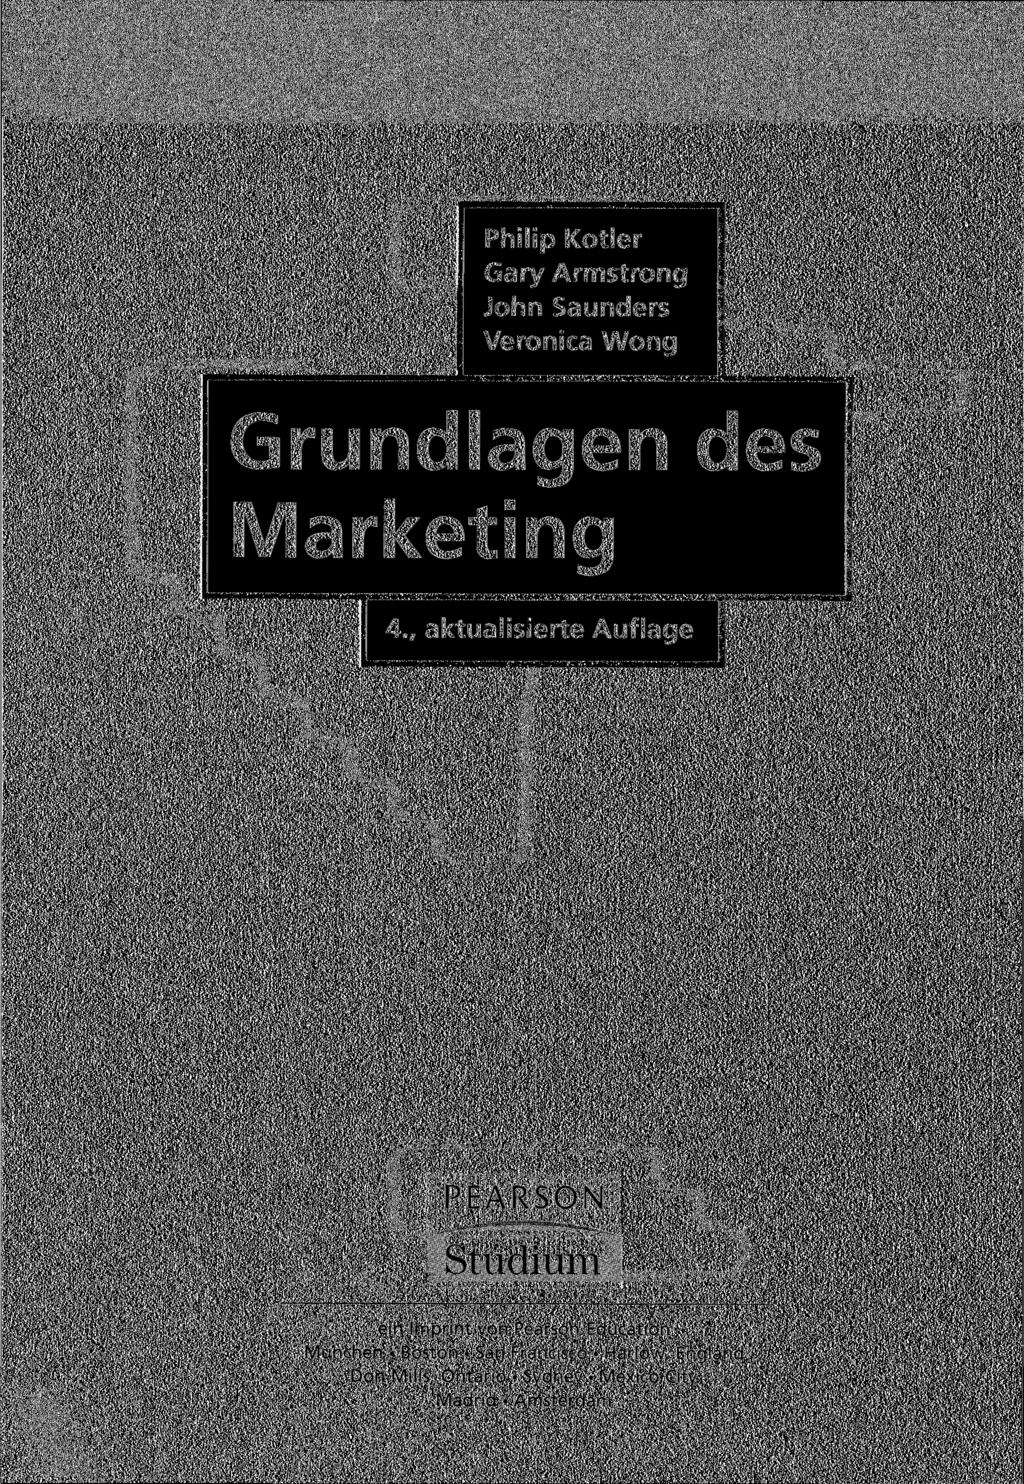 Philip Kotler Gary Armstrong John Saunders Veronica Wong Grundlagen des Marketing 4.